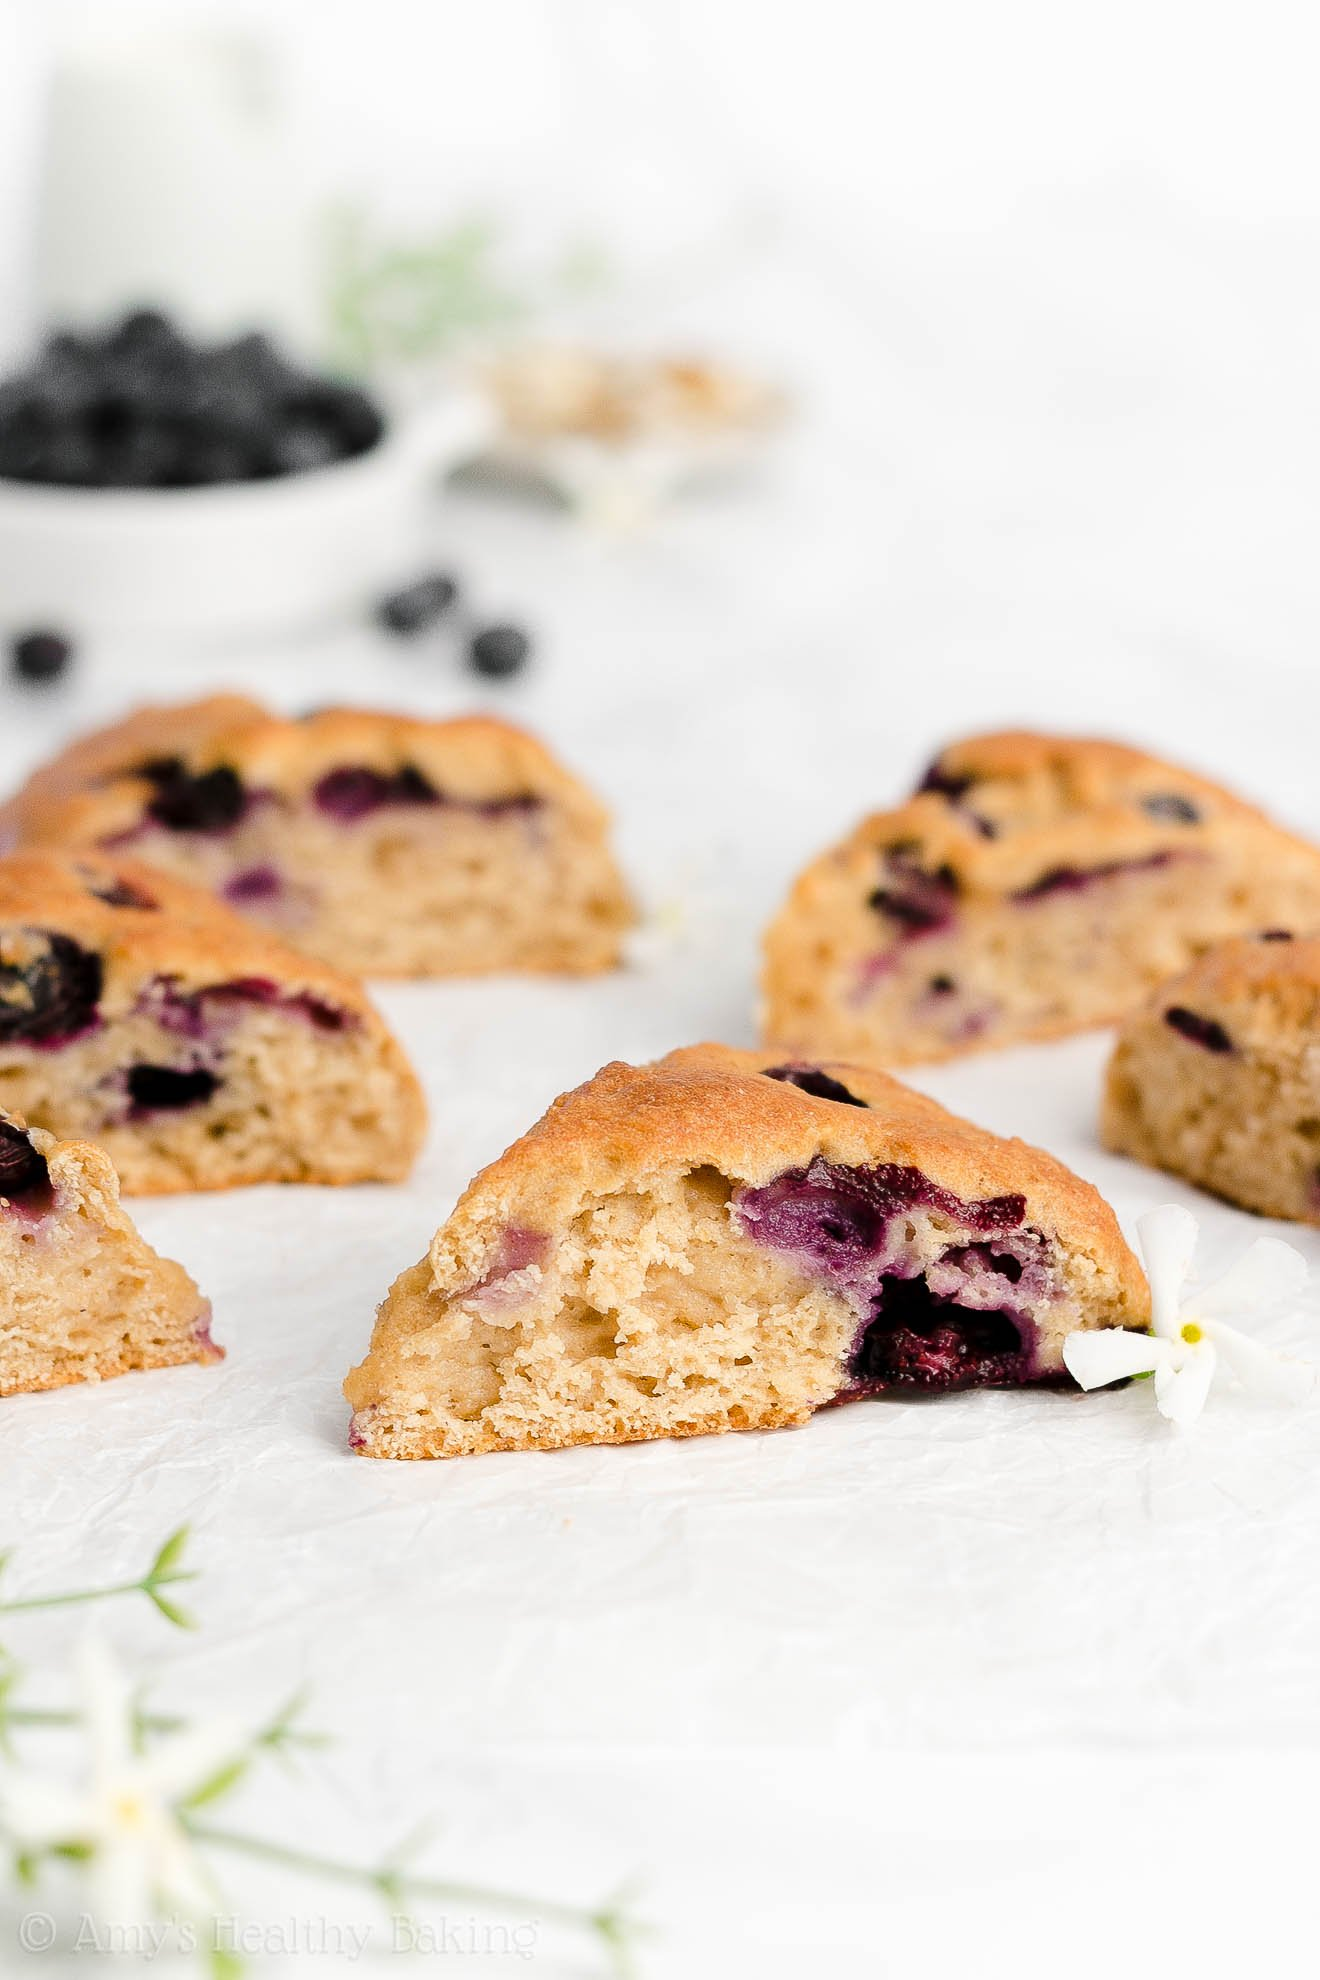 Easy Healthy Clean Eating Gluten Free Greek Yogurt Blueberry Almond Scones